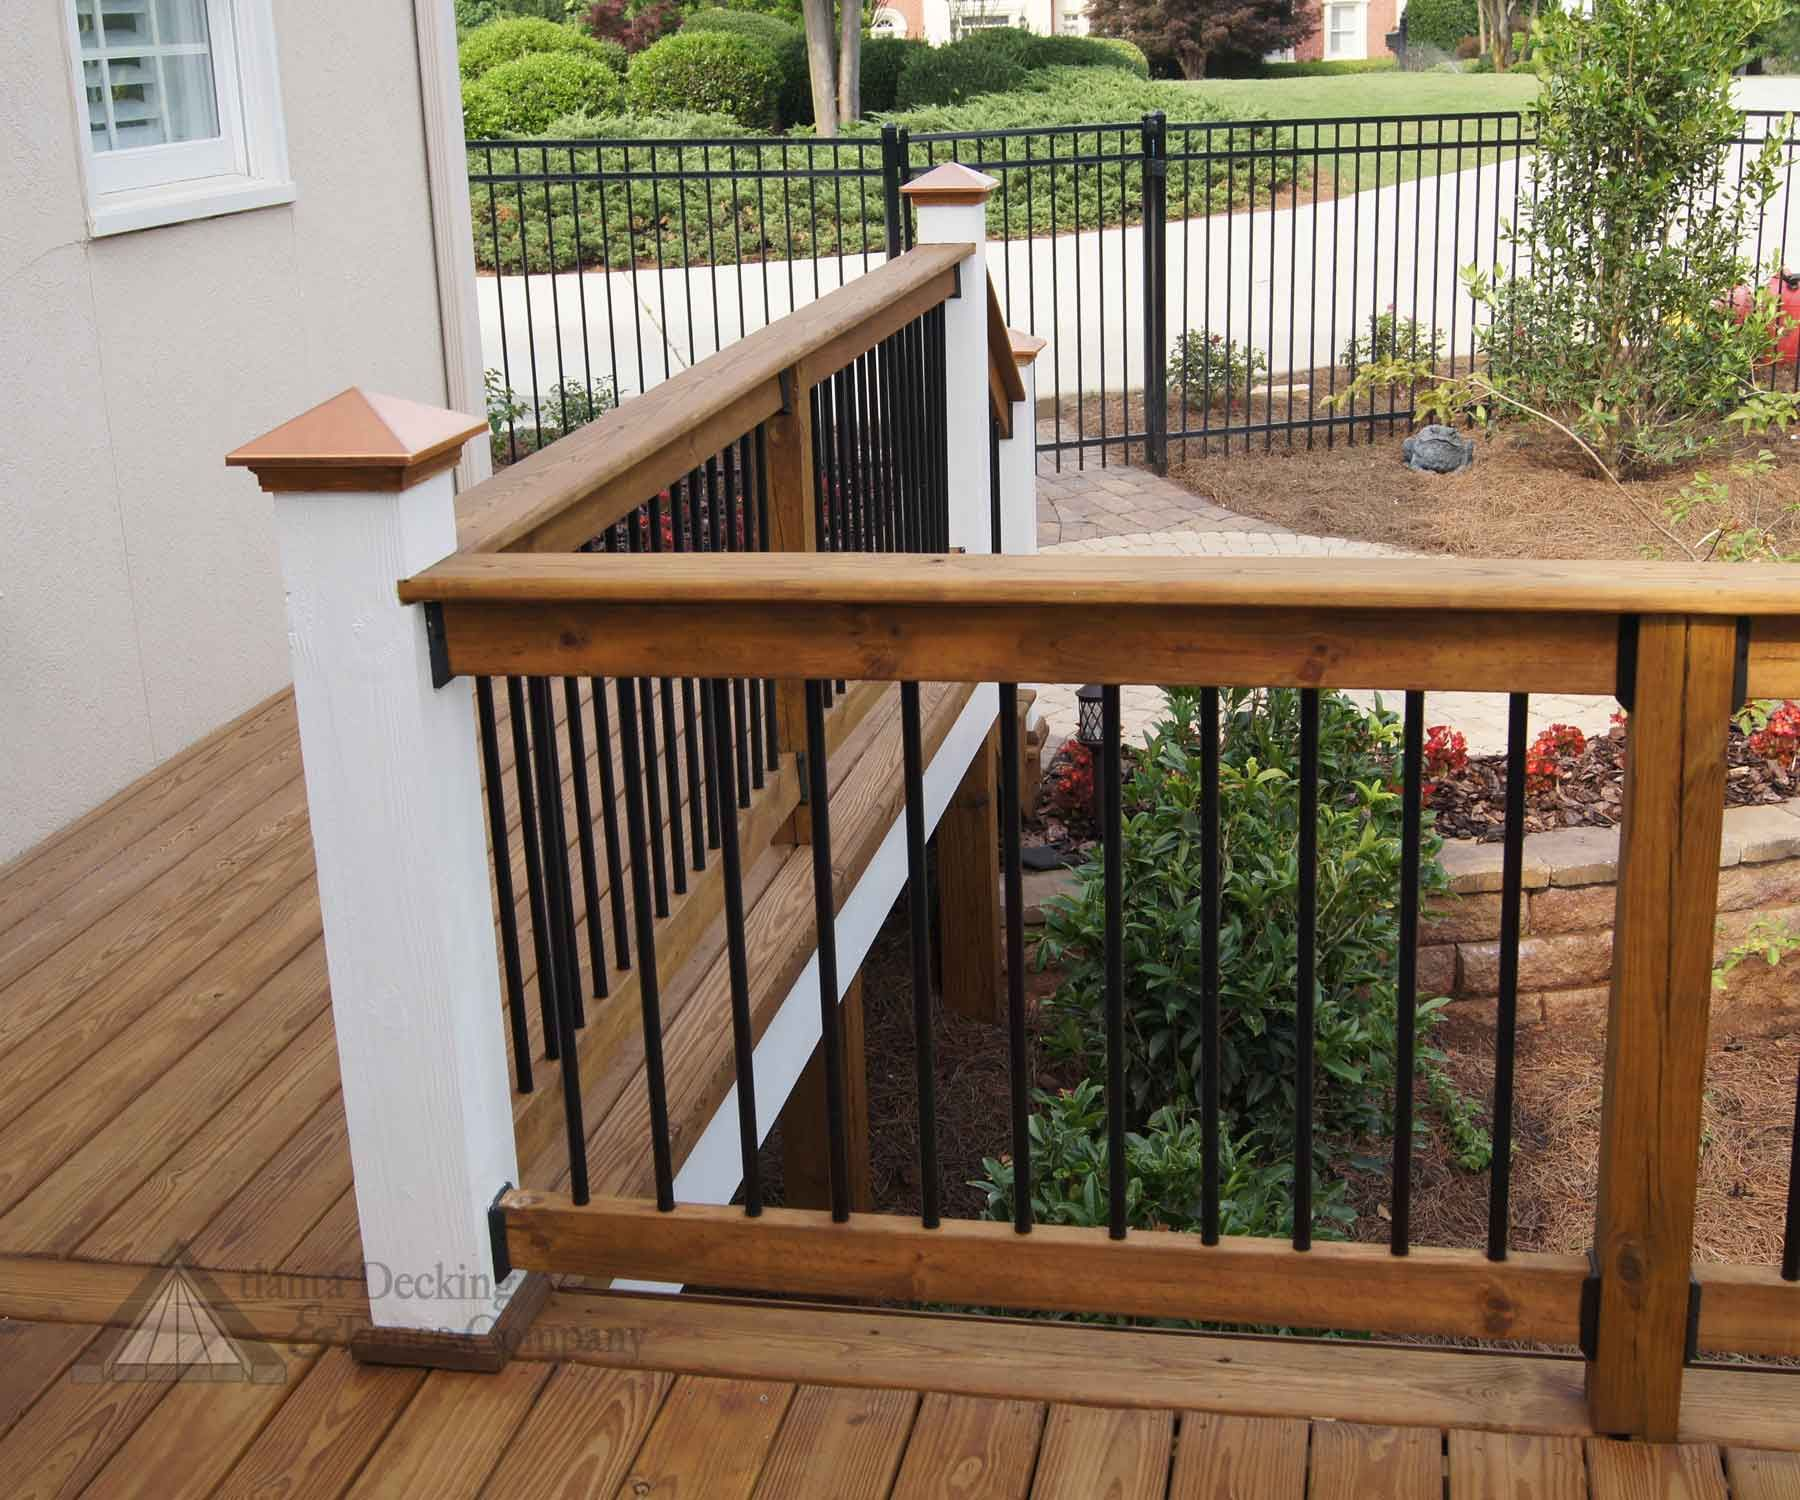 Modern Handrail Outdoor Wallpaper Deck Railing Ideas